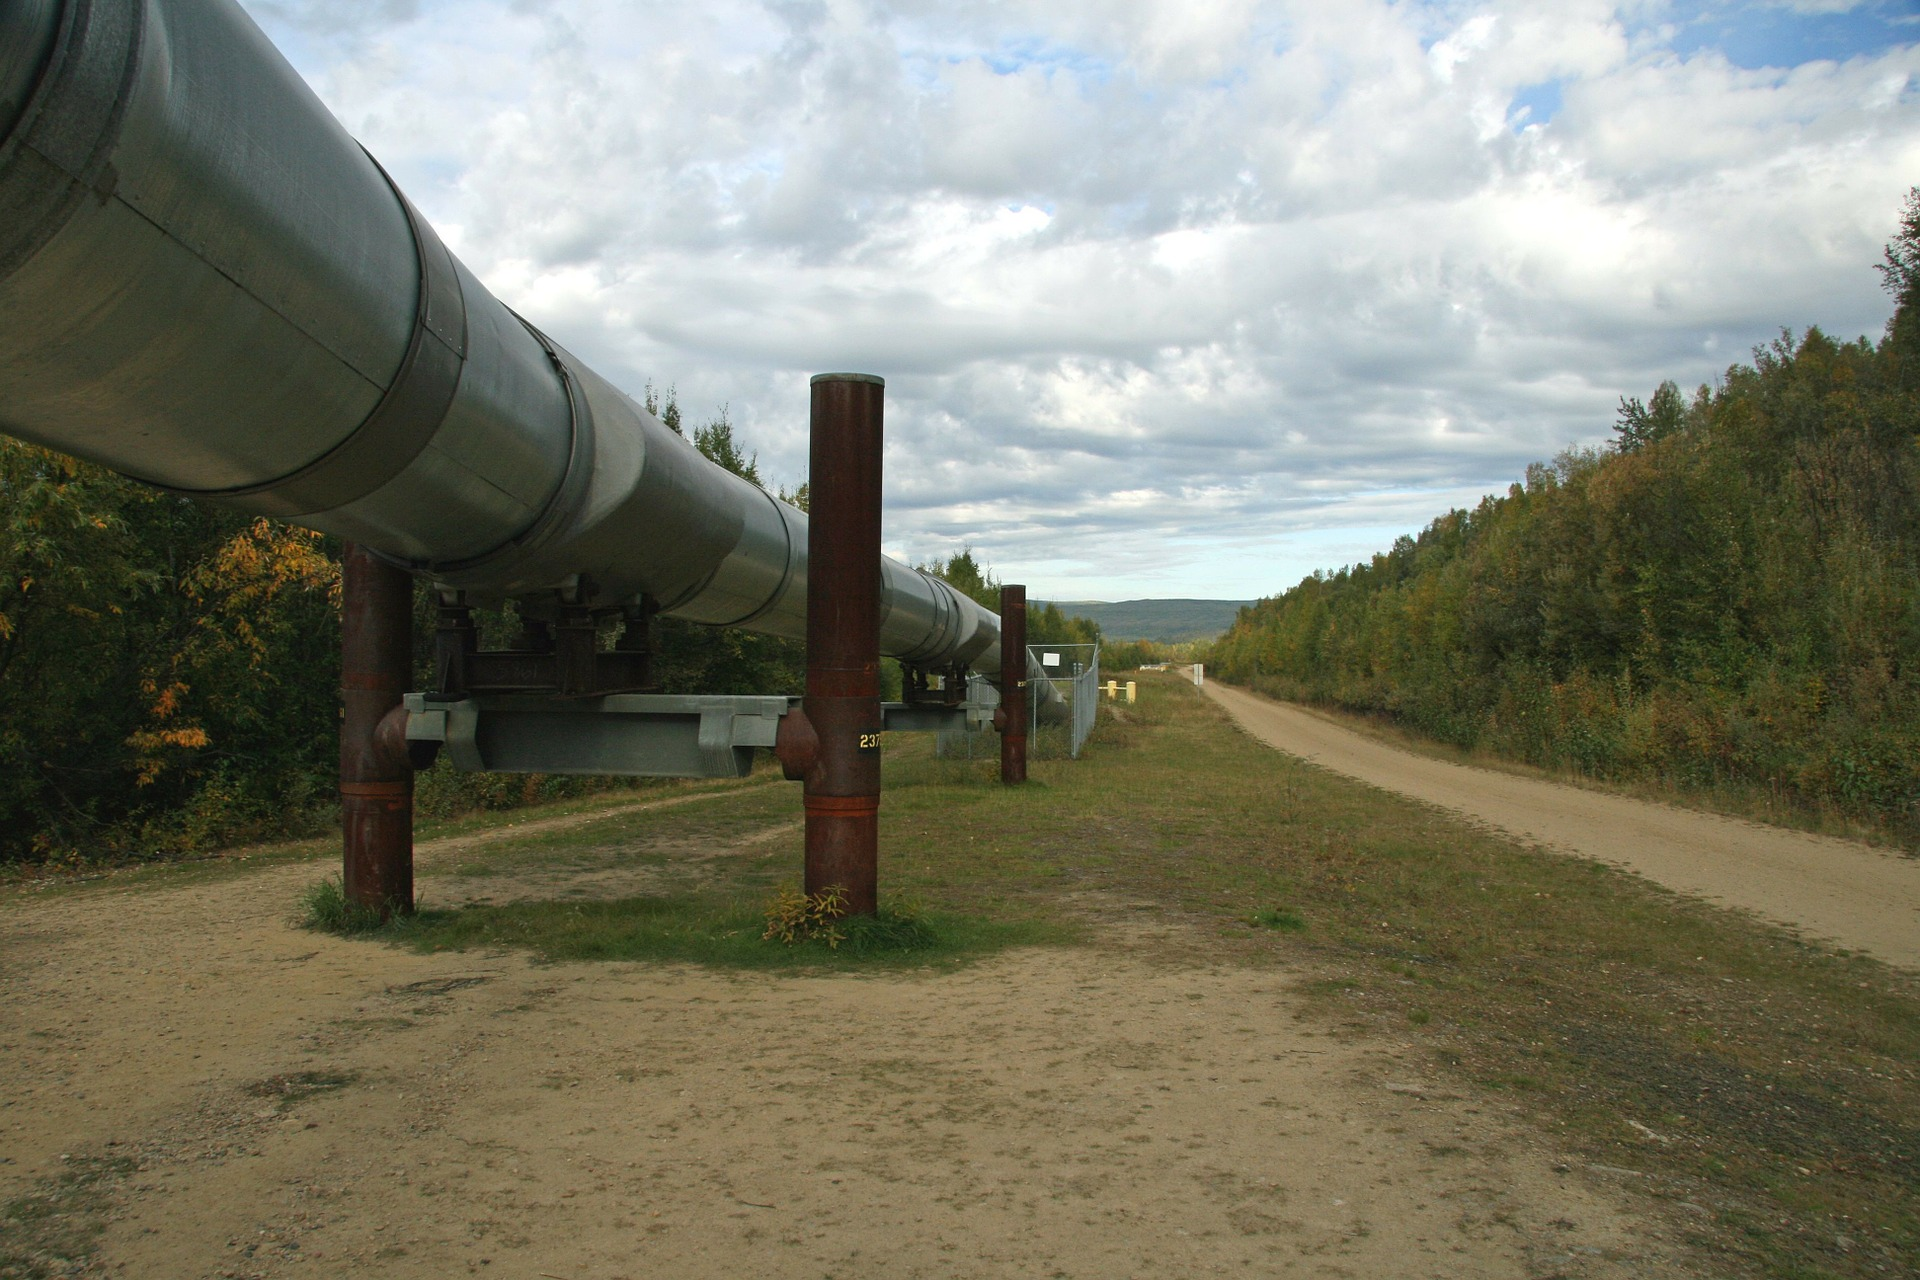 Pipeline running through many miles of land.